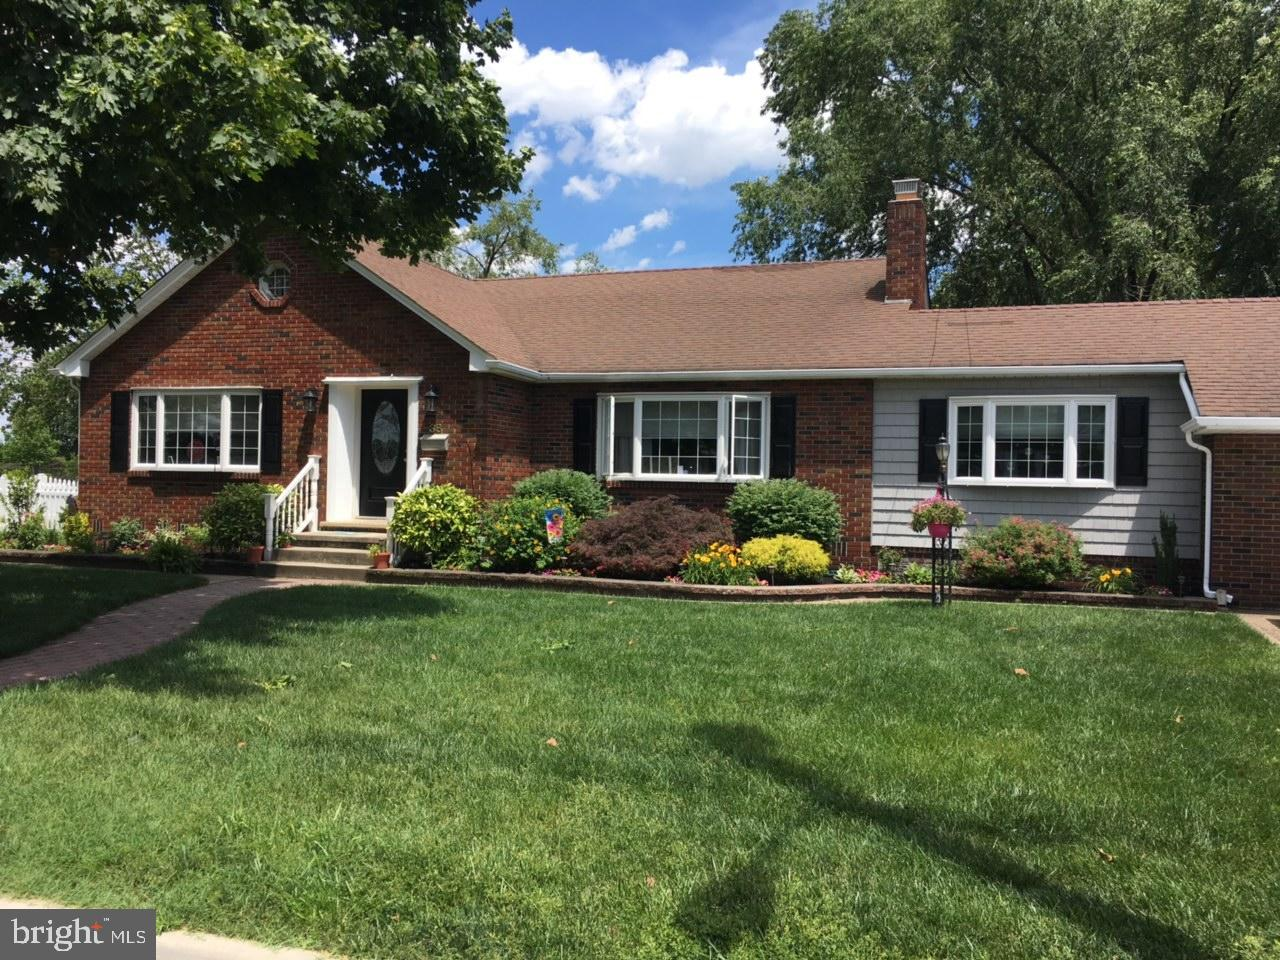 38 N ORCHARD STREET, GIBBSTOWN, NJ 08027